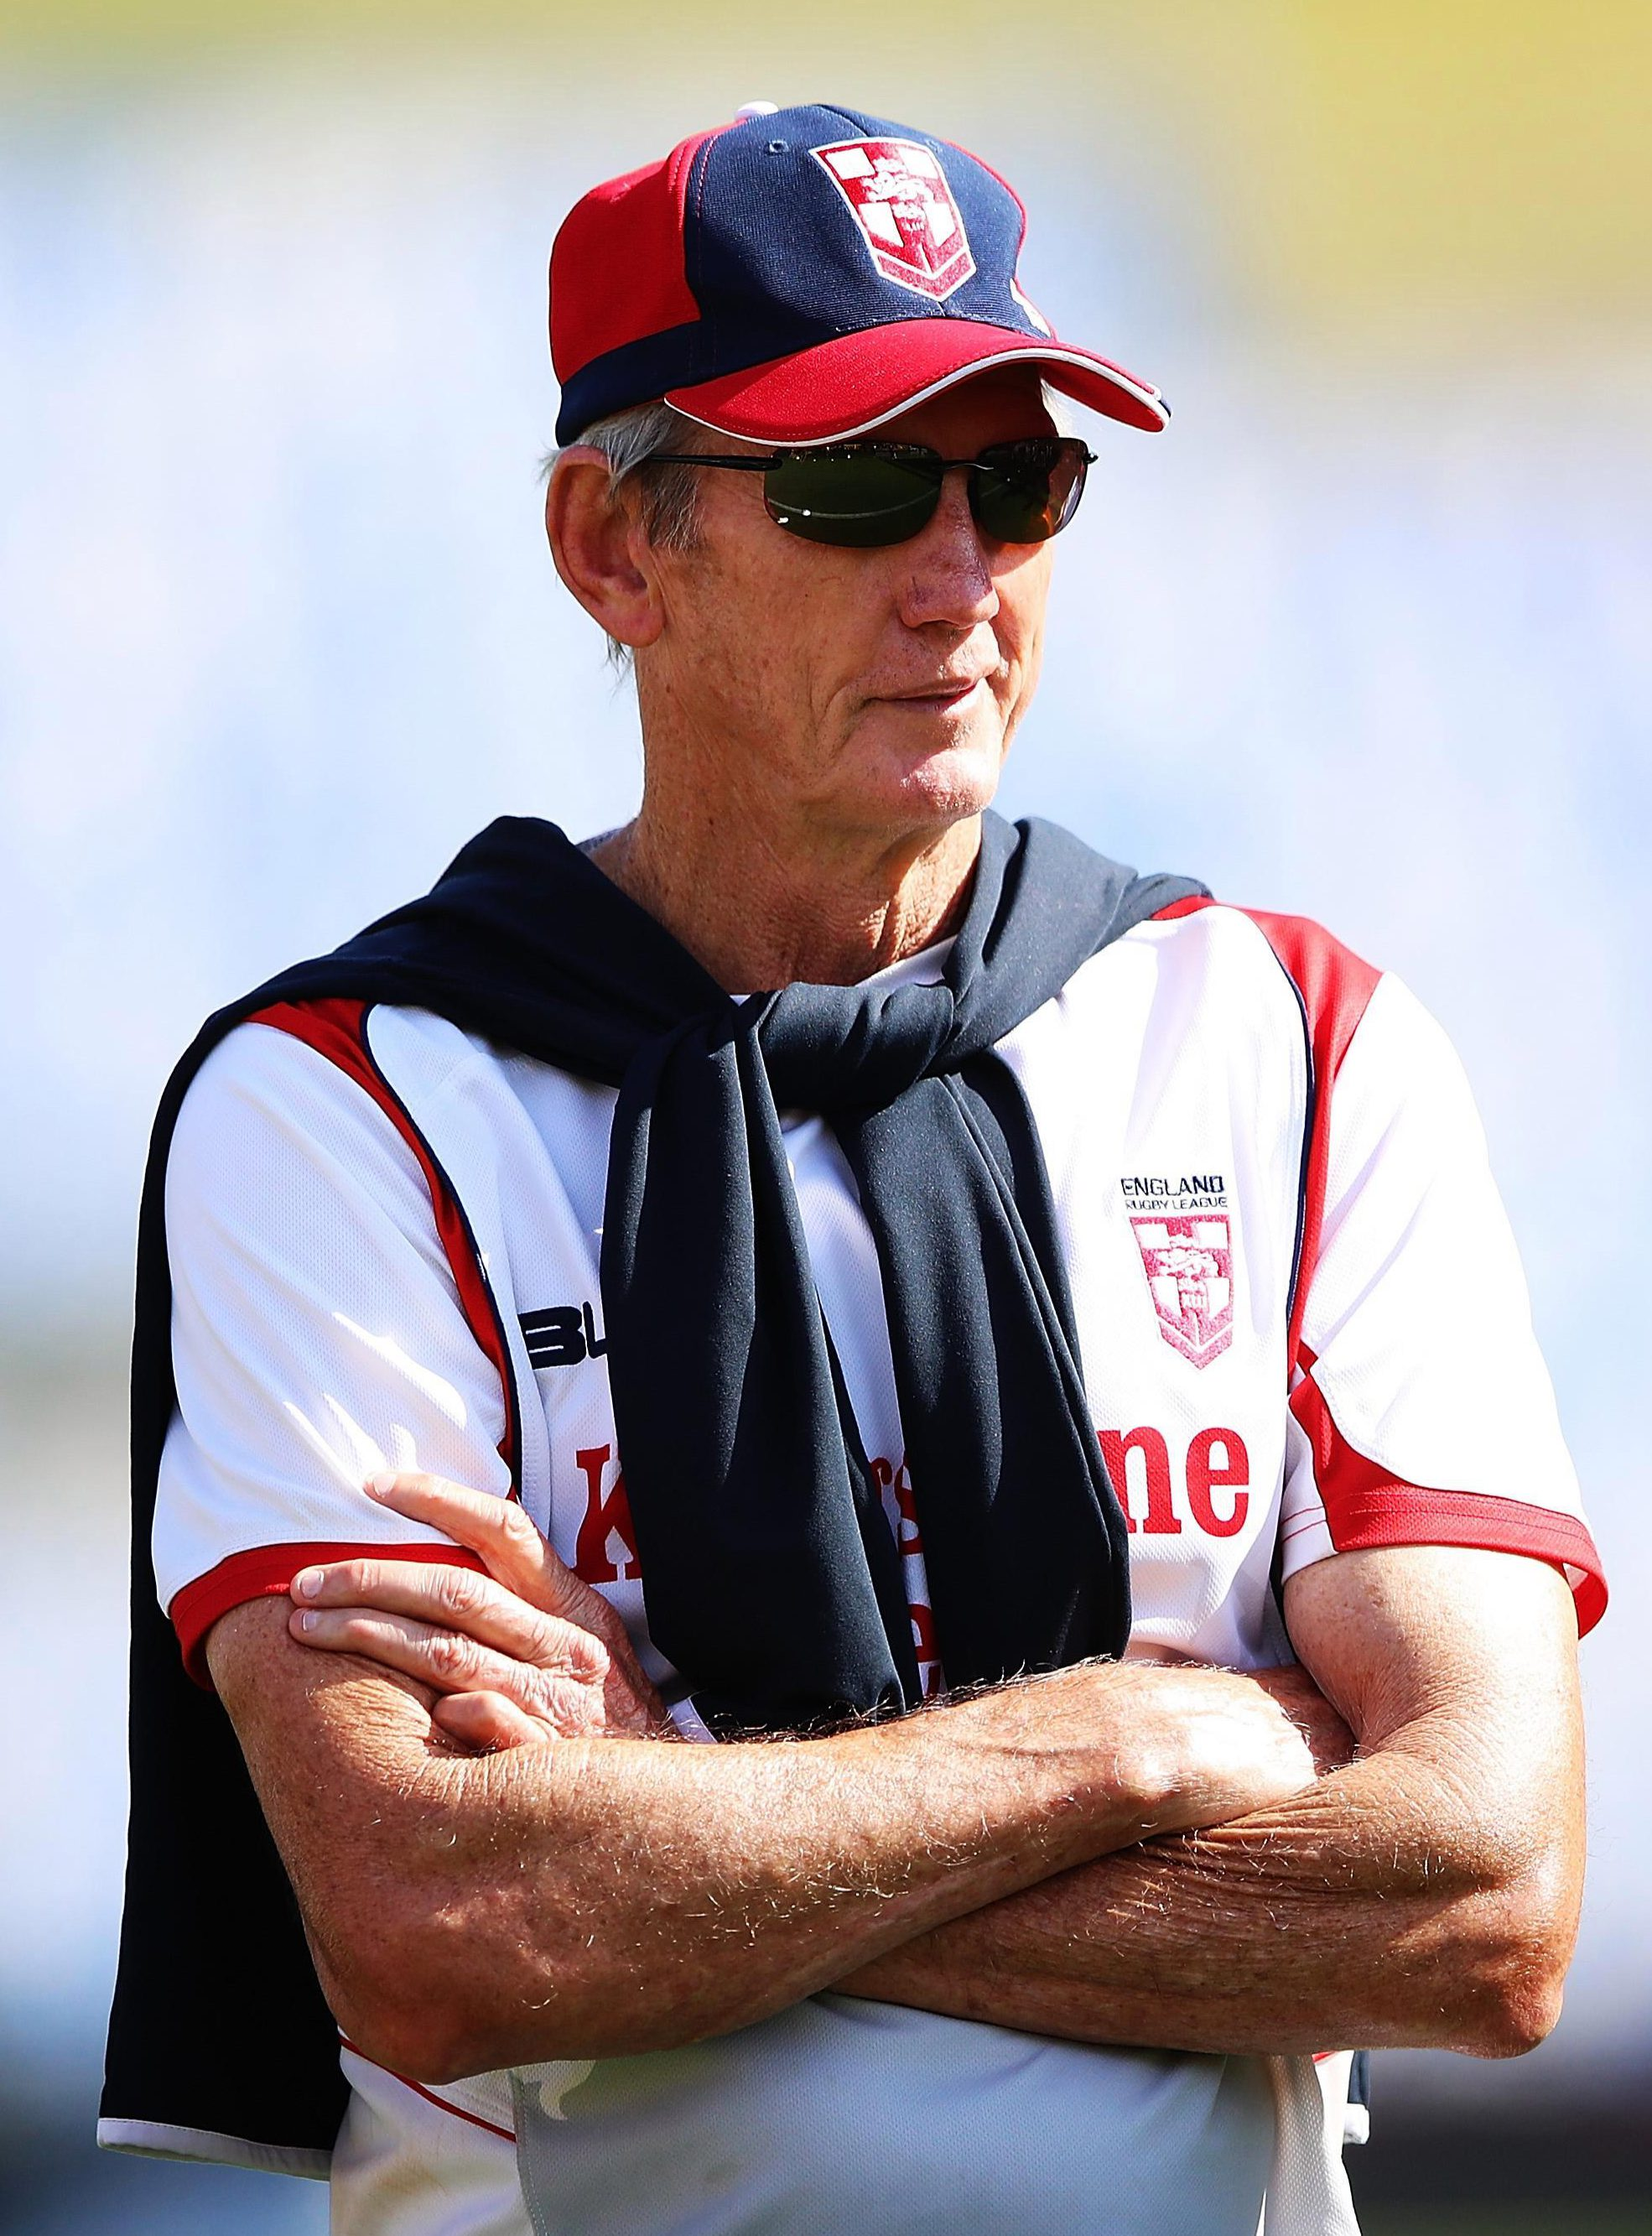 Wayne Bennett names England's squad to face France and New Zealand today